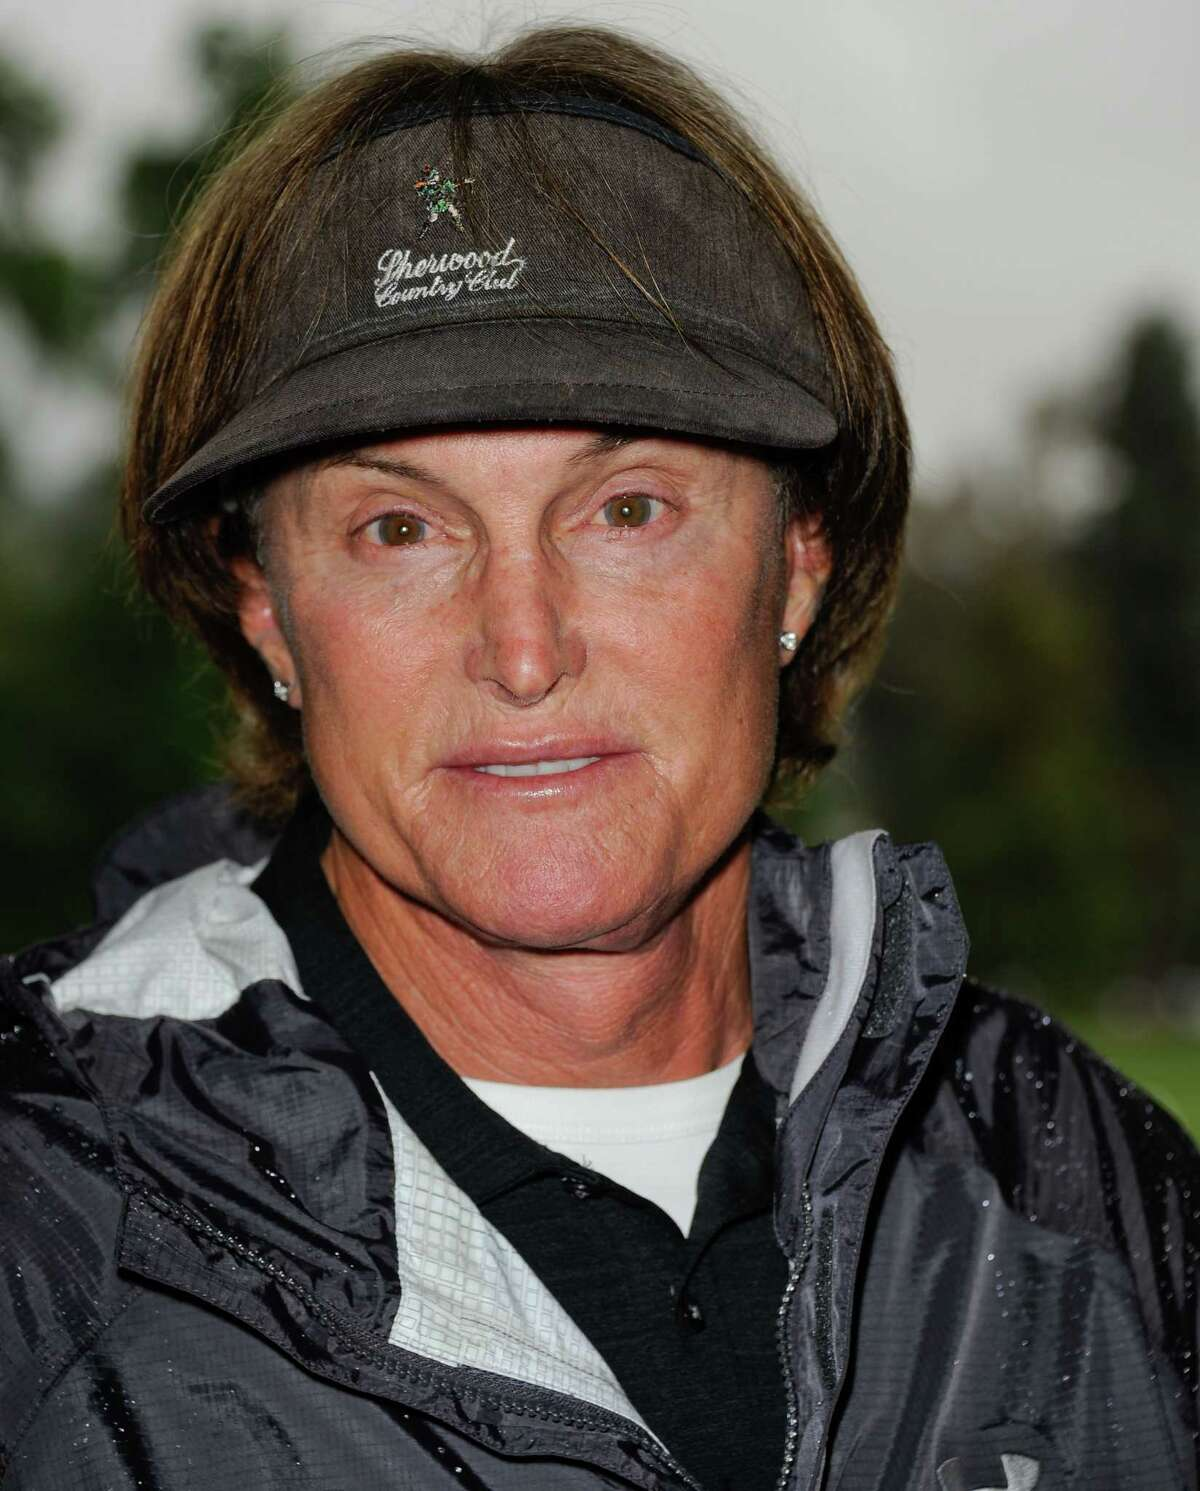 FILE - In this May 6, 2013 file photo, former Olympic athlete Bruce Jenner arrives at the 6th Annual George Lopez Celebrity Golf Classic at the Lakeside Golf Club in Toluca Lake, Calif.